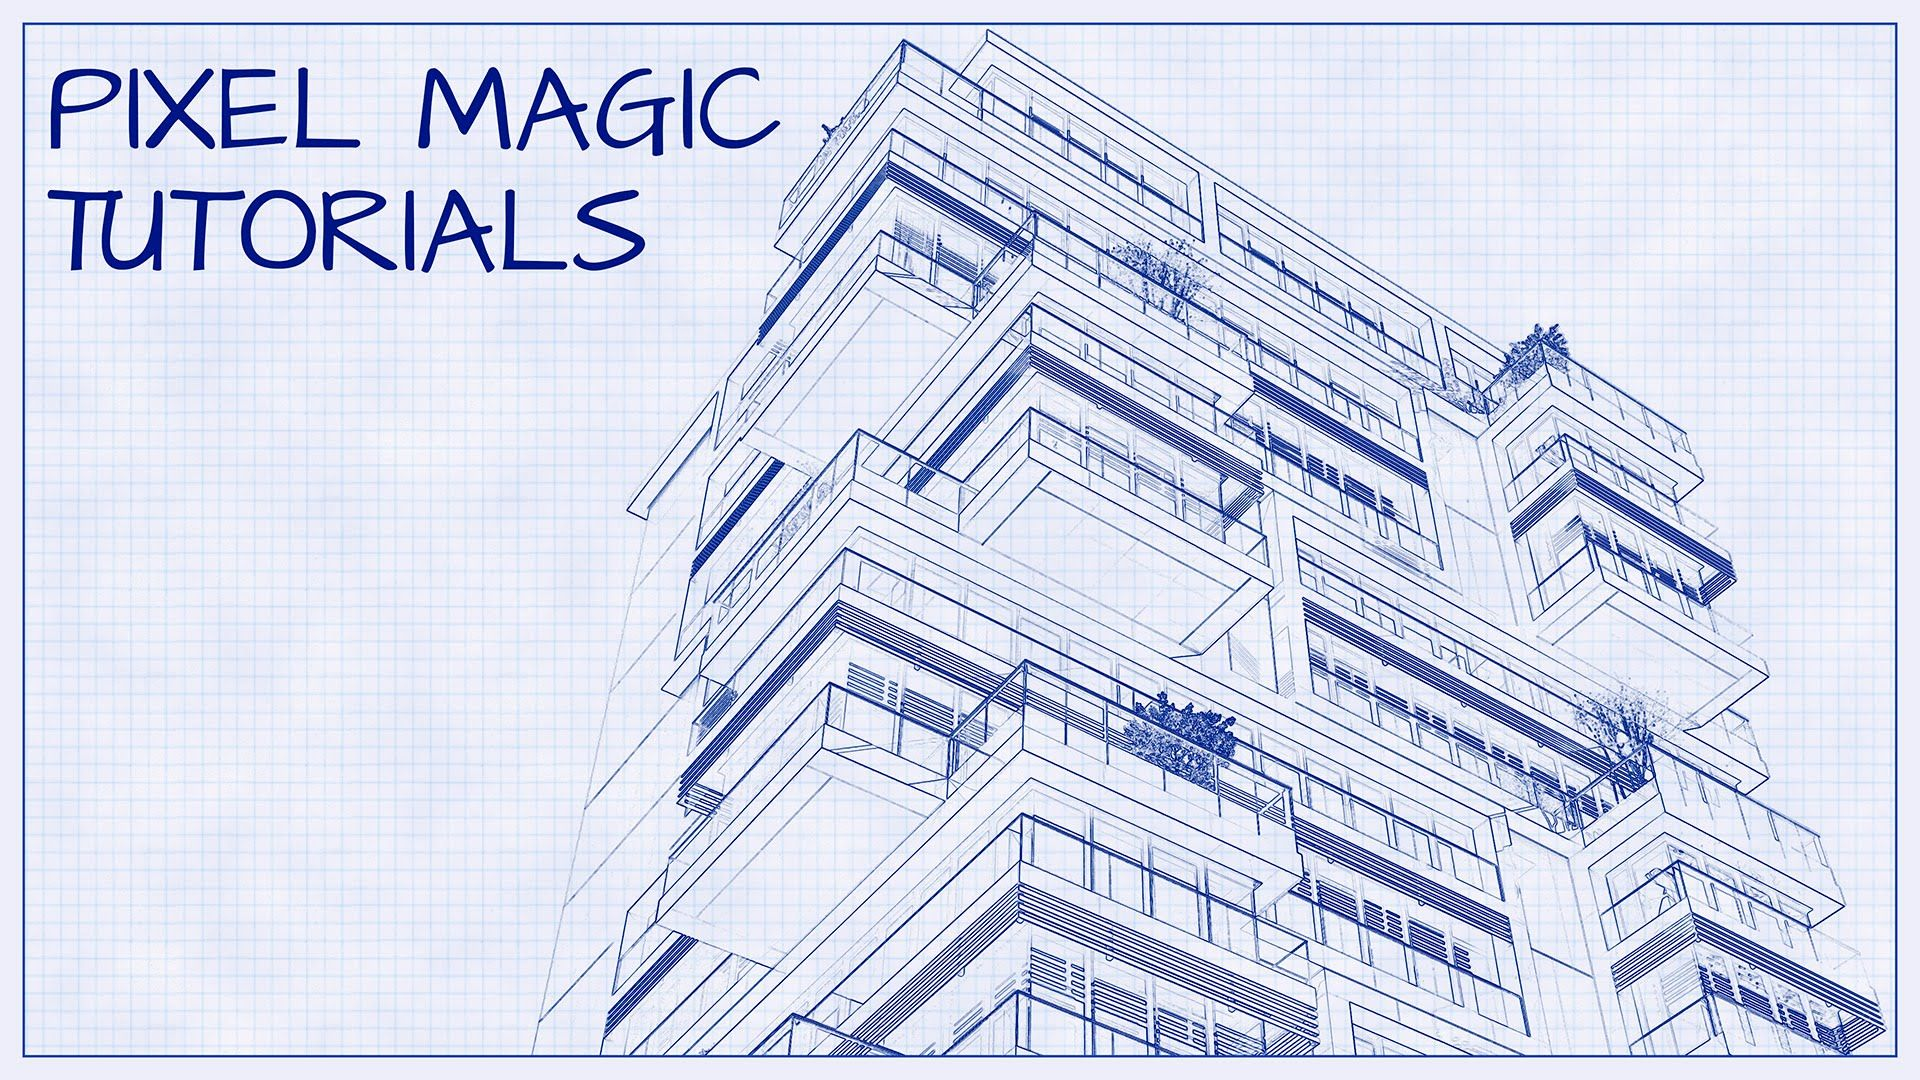 Turn a photo into an architectural blueprint photoshop tutorial turn a photo into an architectural blueprint photoshop tutorial malvernweather Gallery